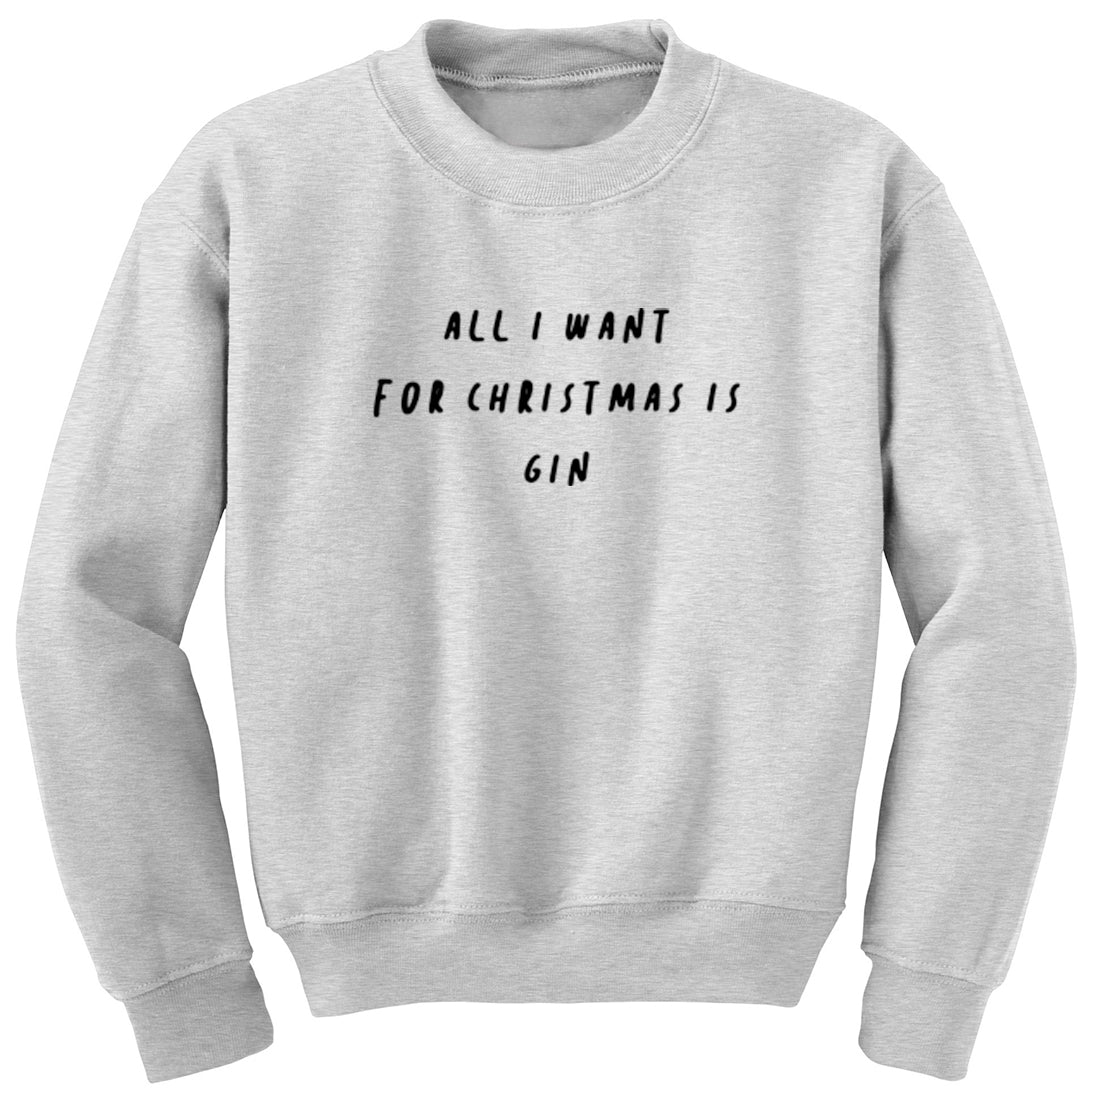 All I Want For Christmas Is Gin Unisex Jumper K2472 - Illustrated Identity Ltd.